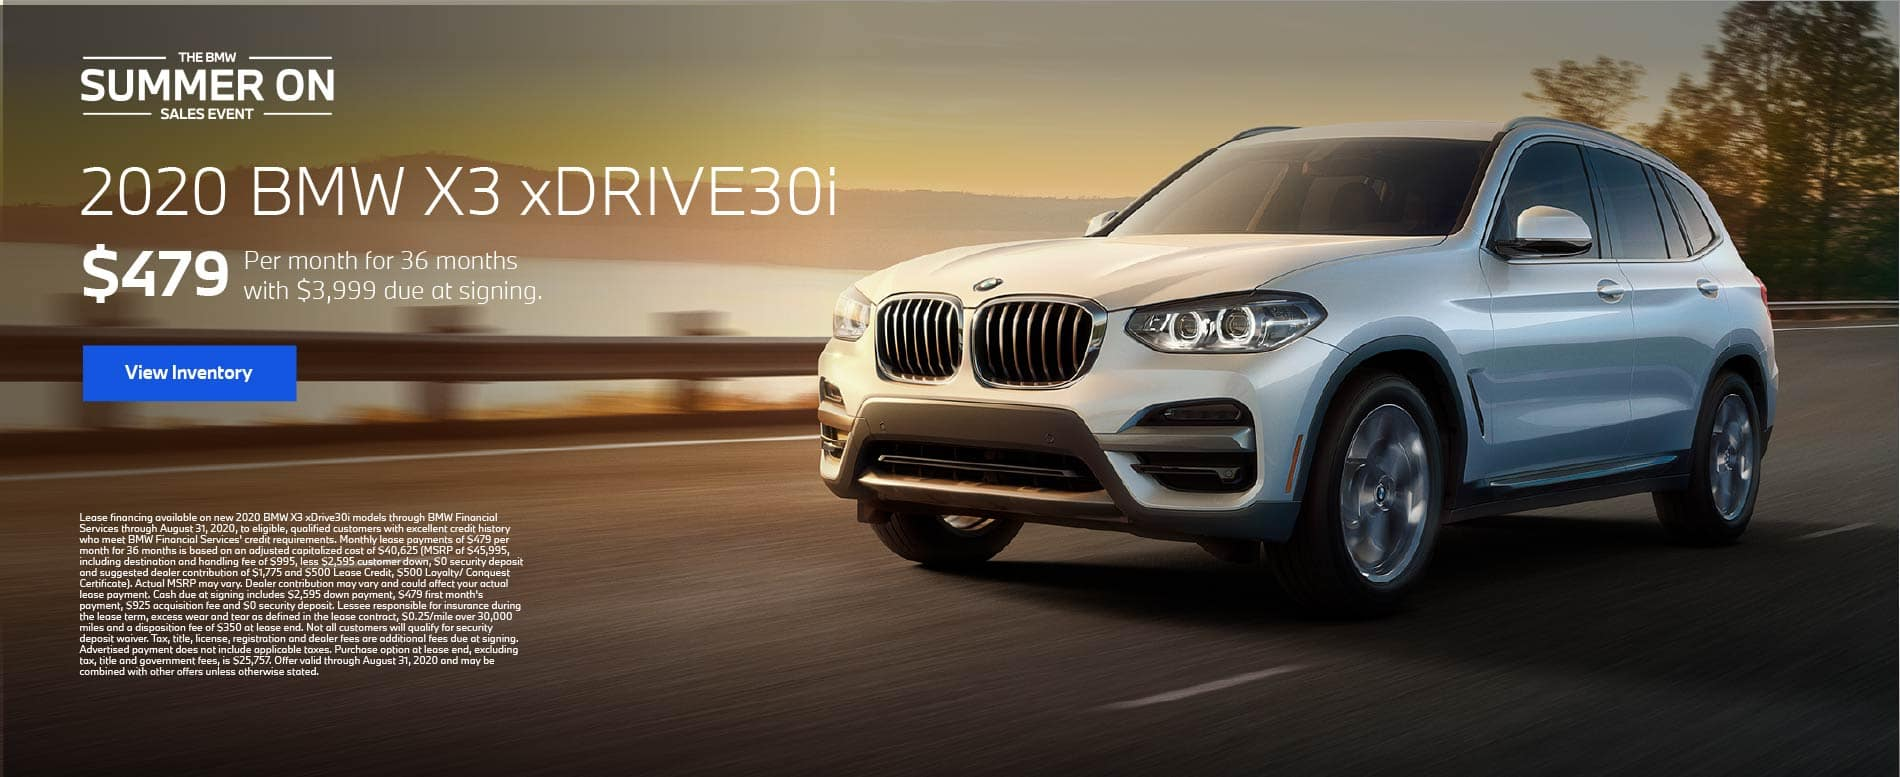 2020 BMW X3 xDrive30i $479 a month for 36 months | Offer Details